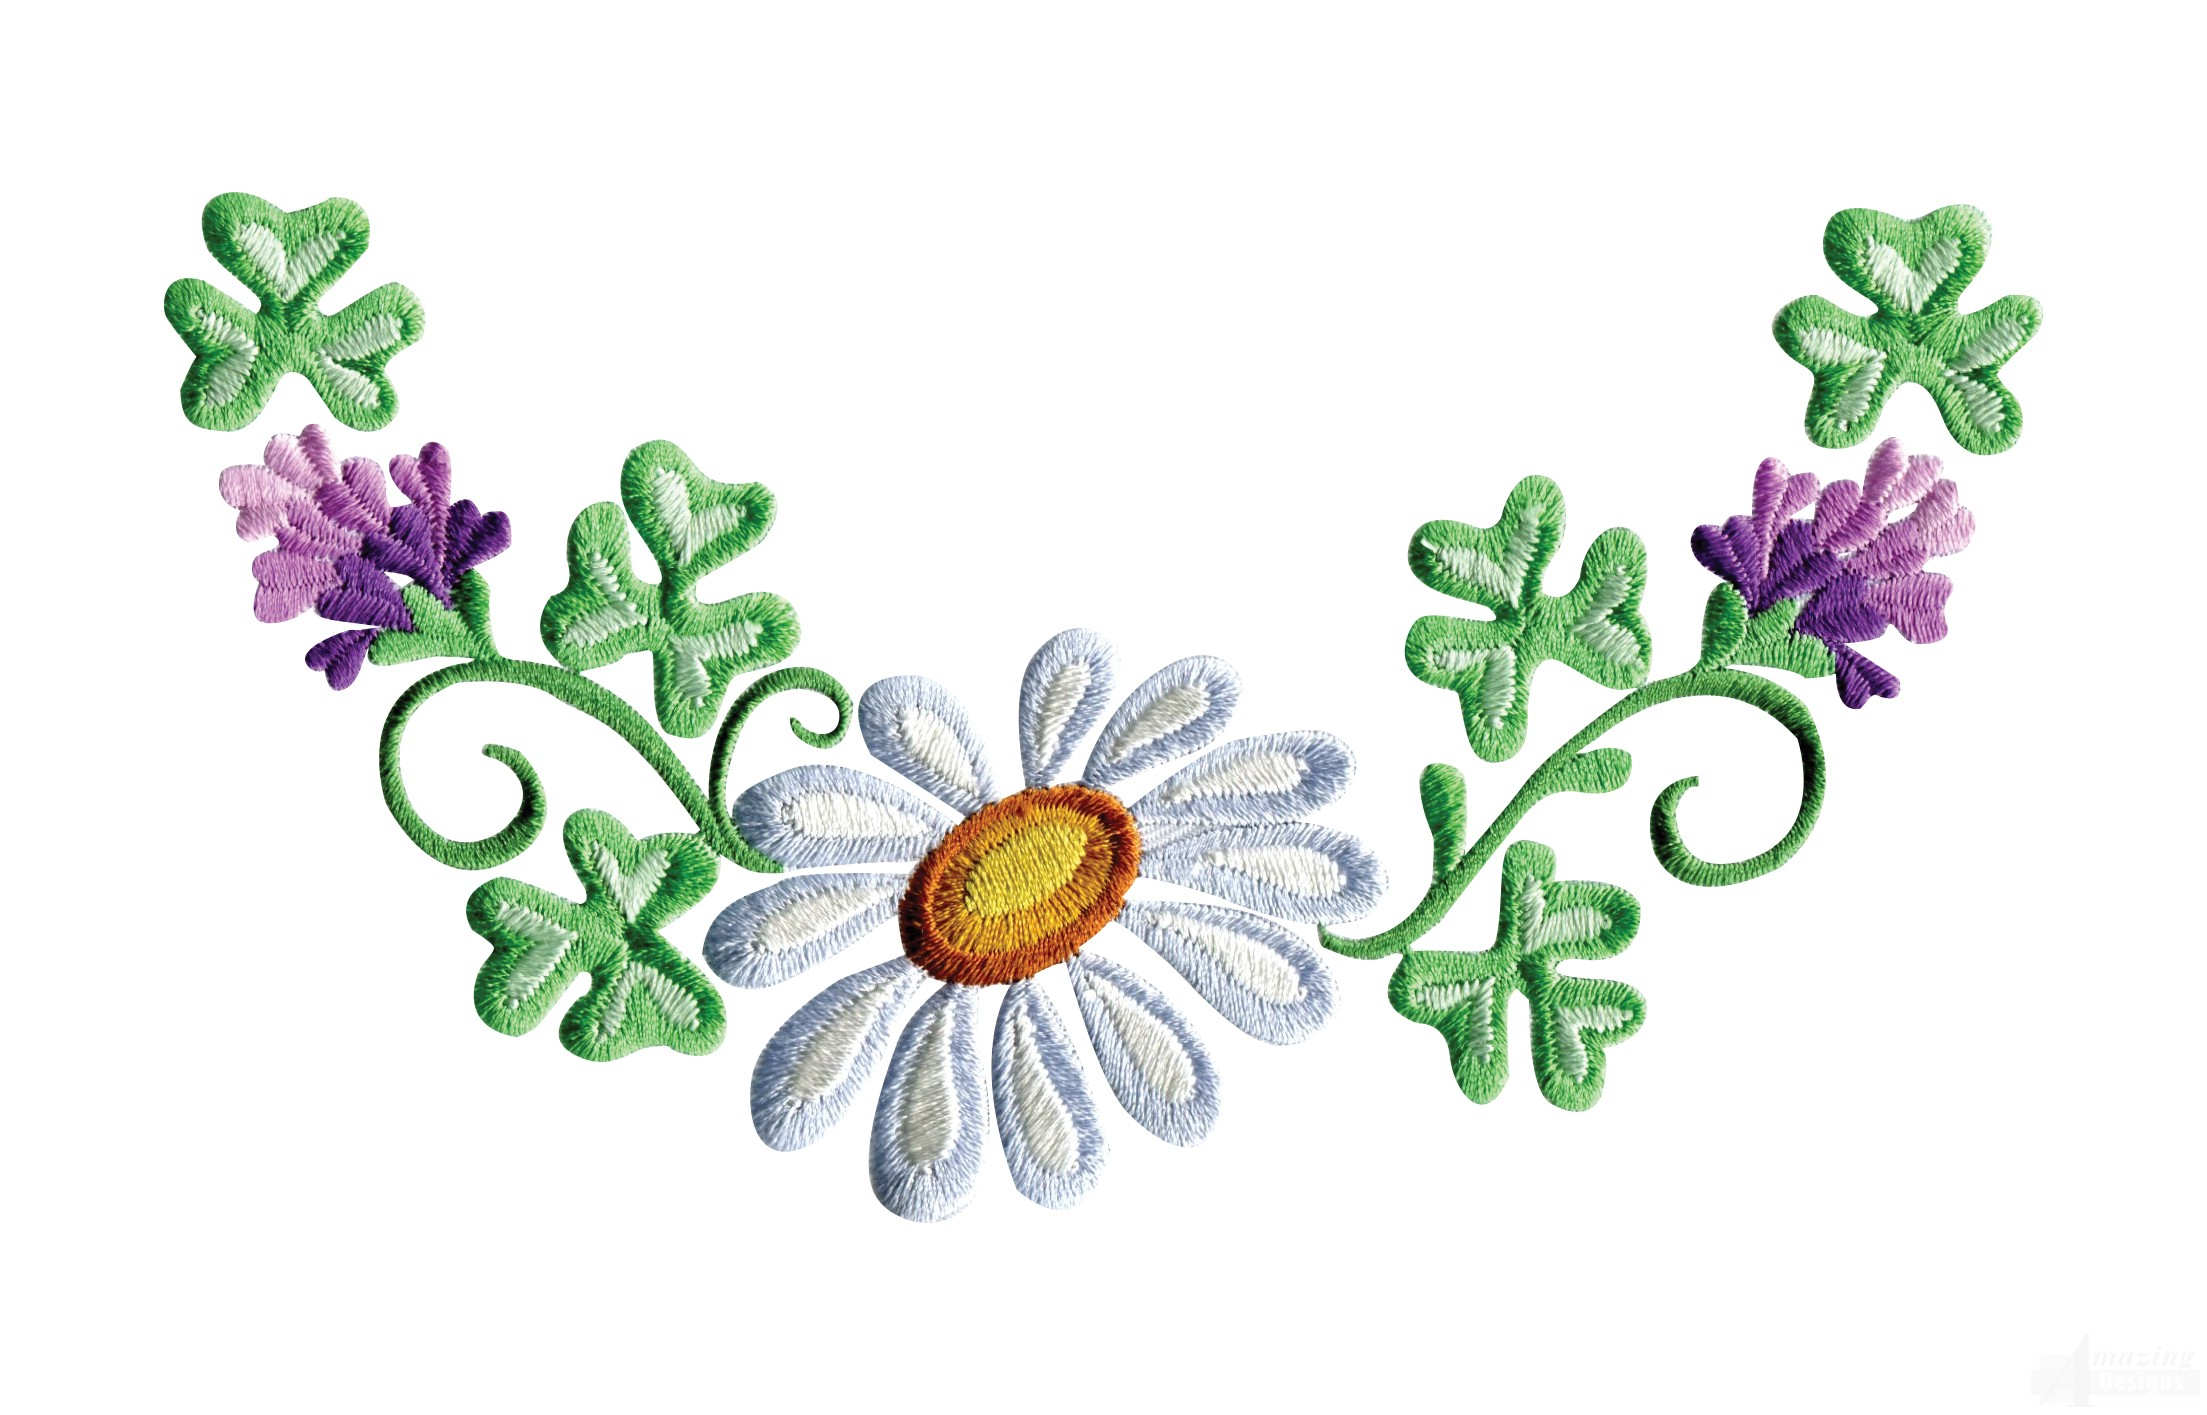 daisy floral border 1 embroidery design clipart for embroidery digitizing Cut Clip Art